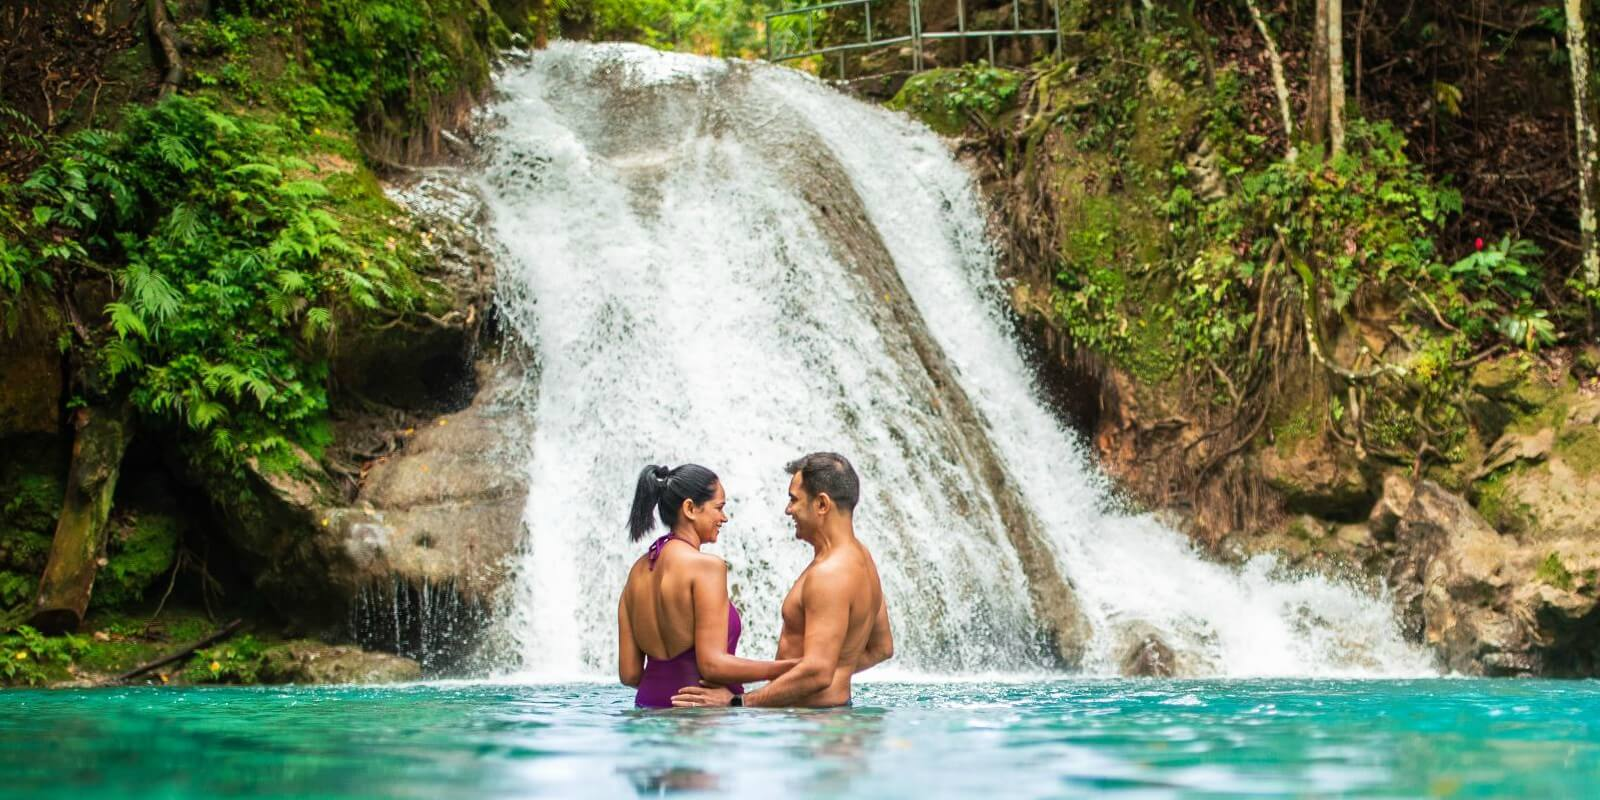 Couple enjoying a secluded Jamaican waterfall